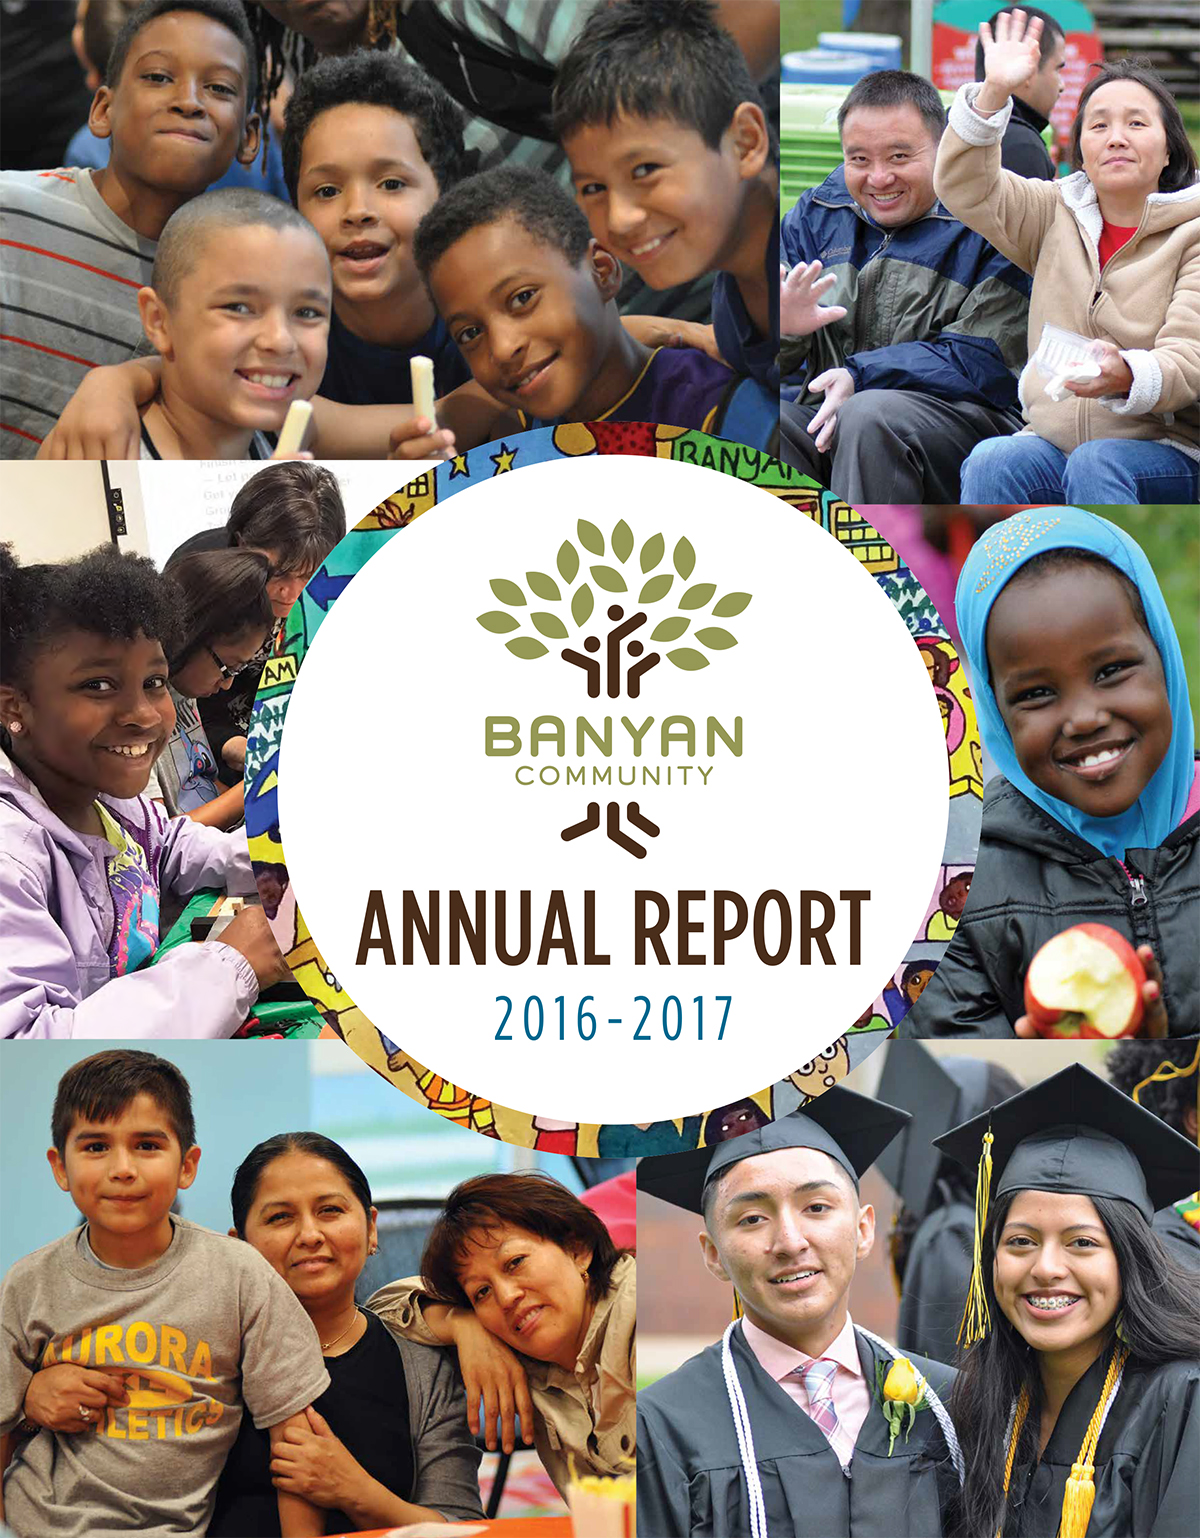 Banyan Community's 2016-2017 annual report cover